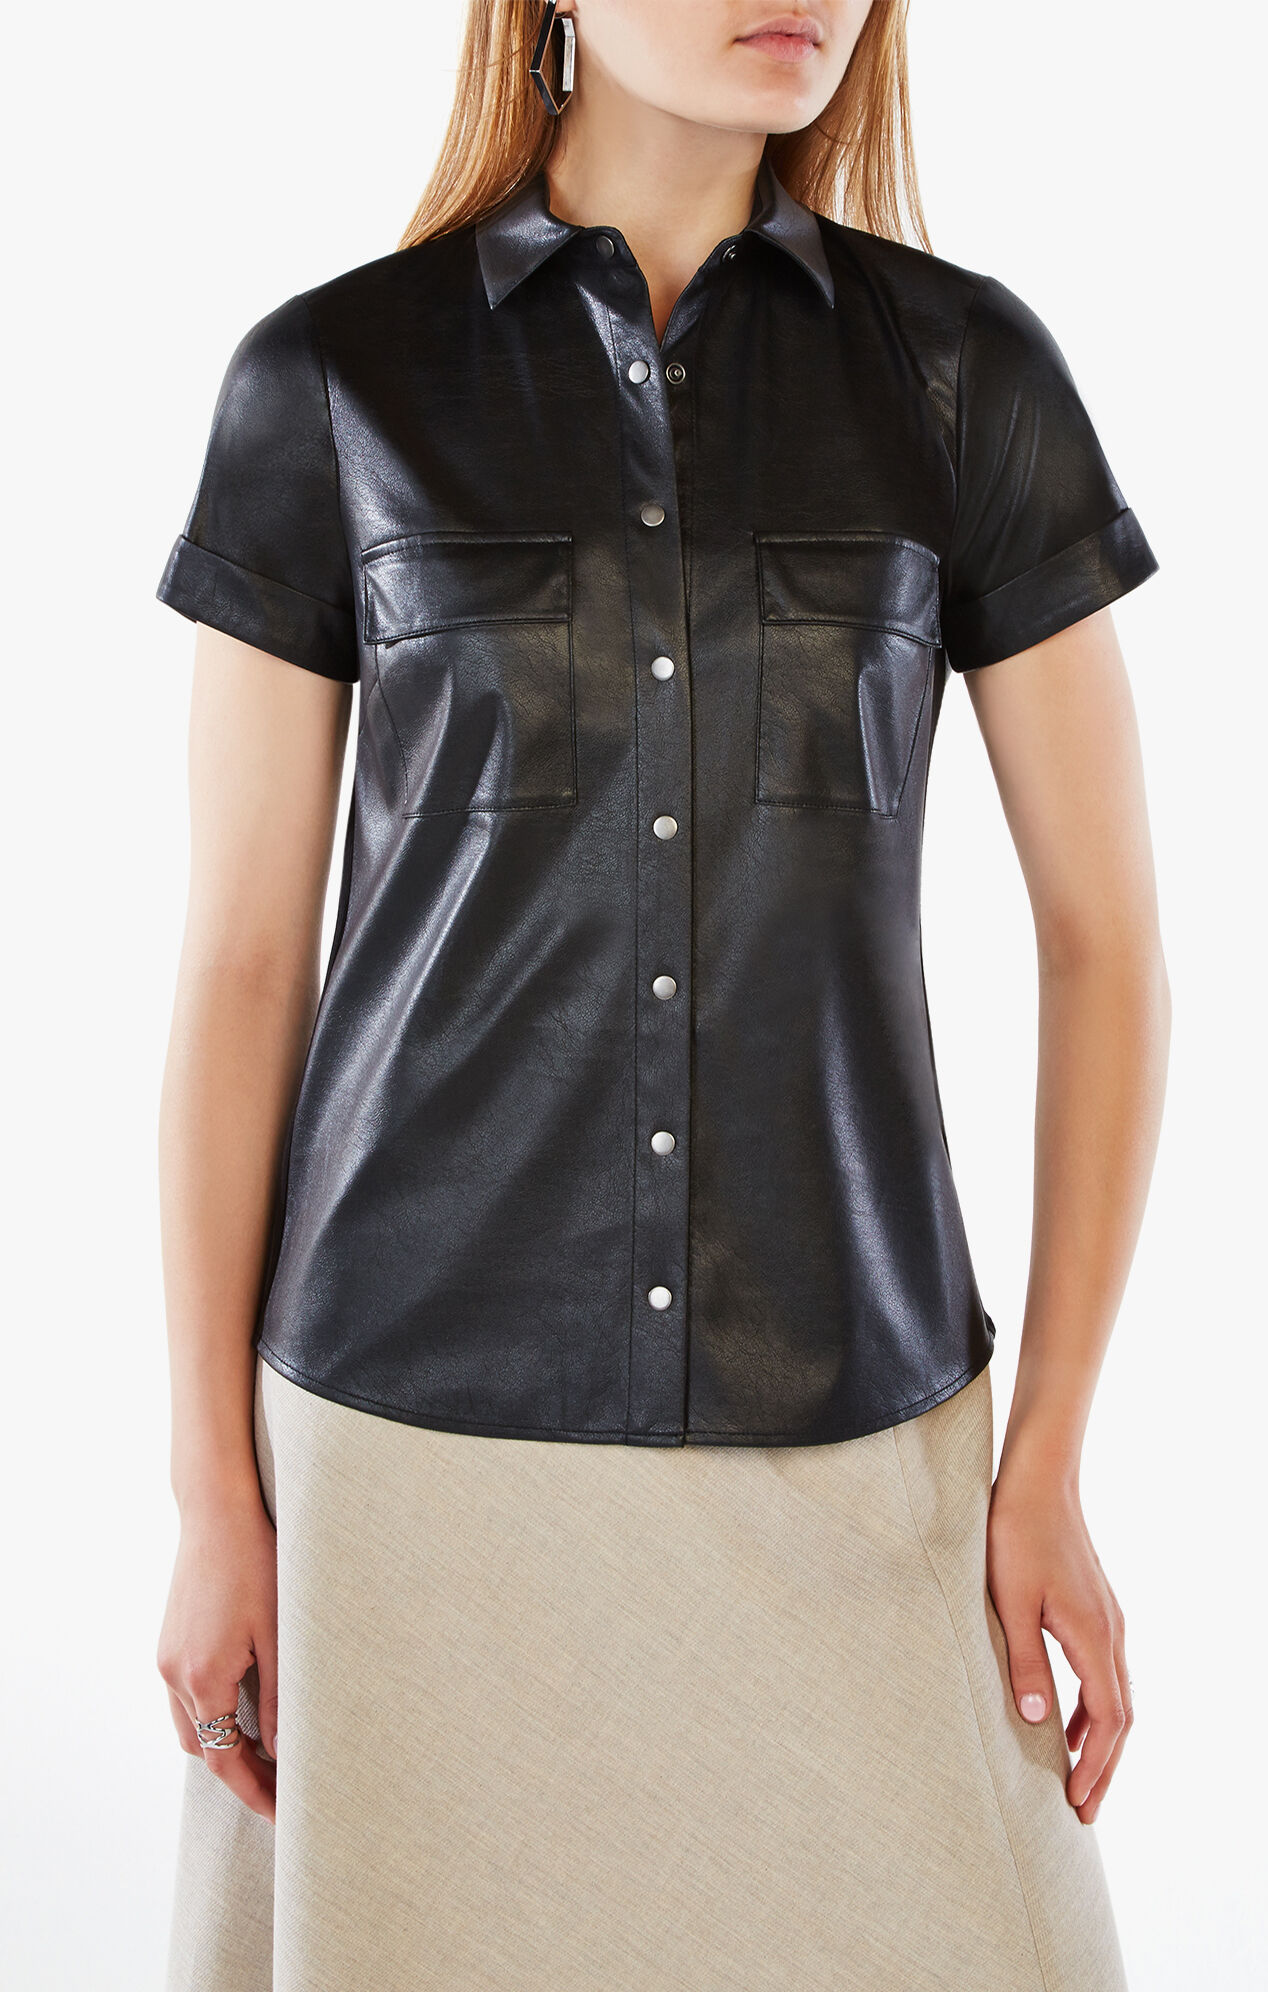 how to clean shirt with pleather